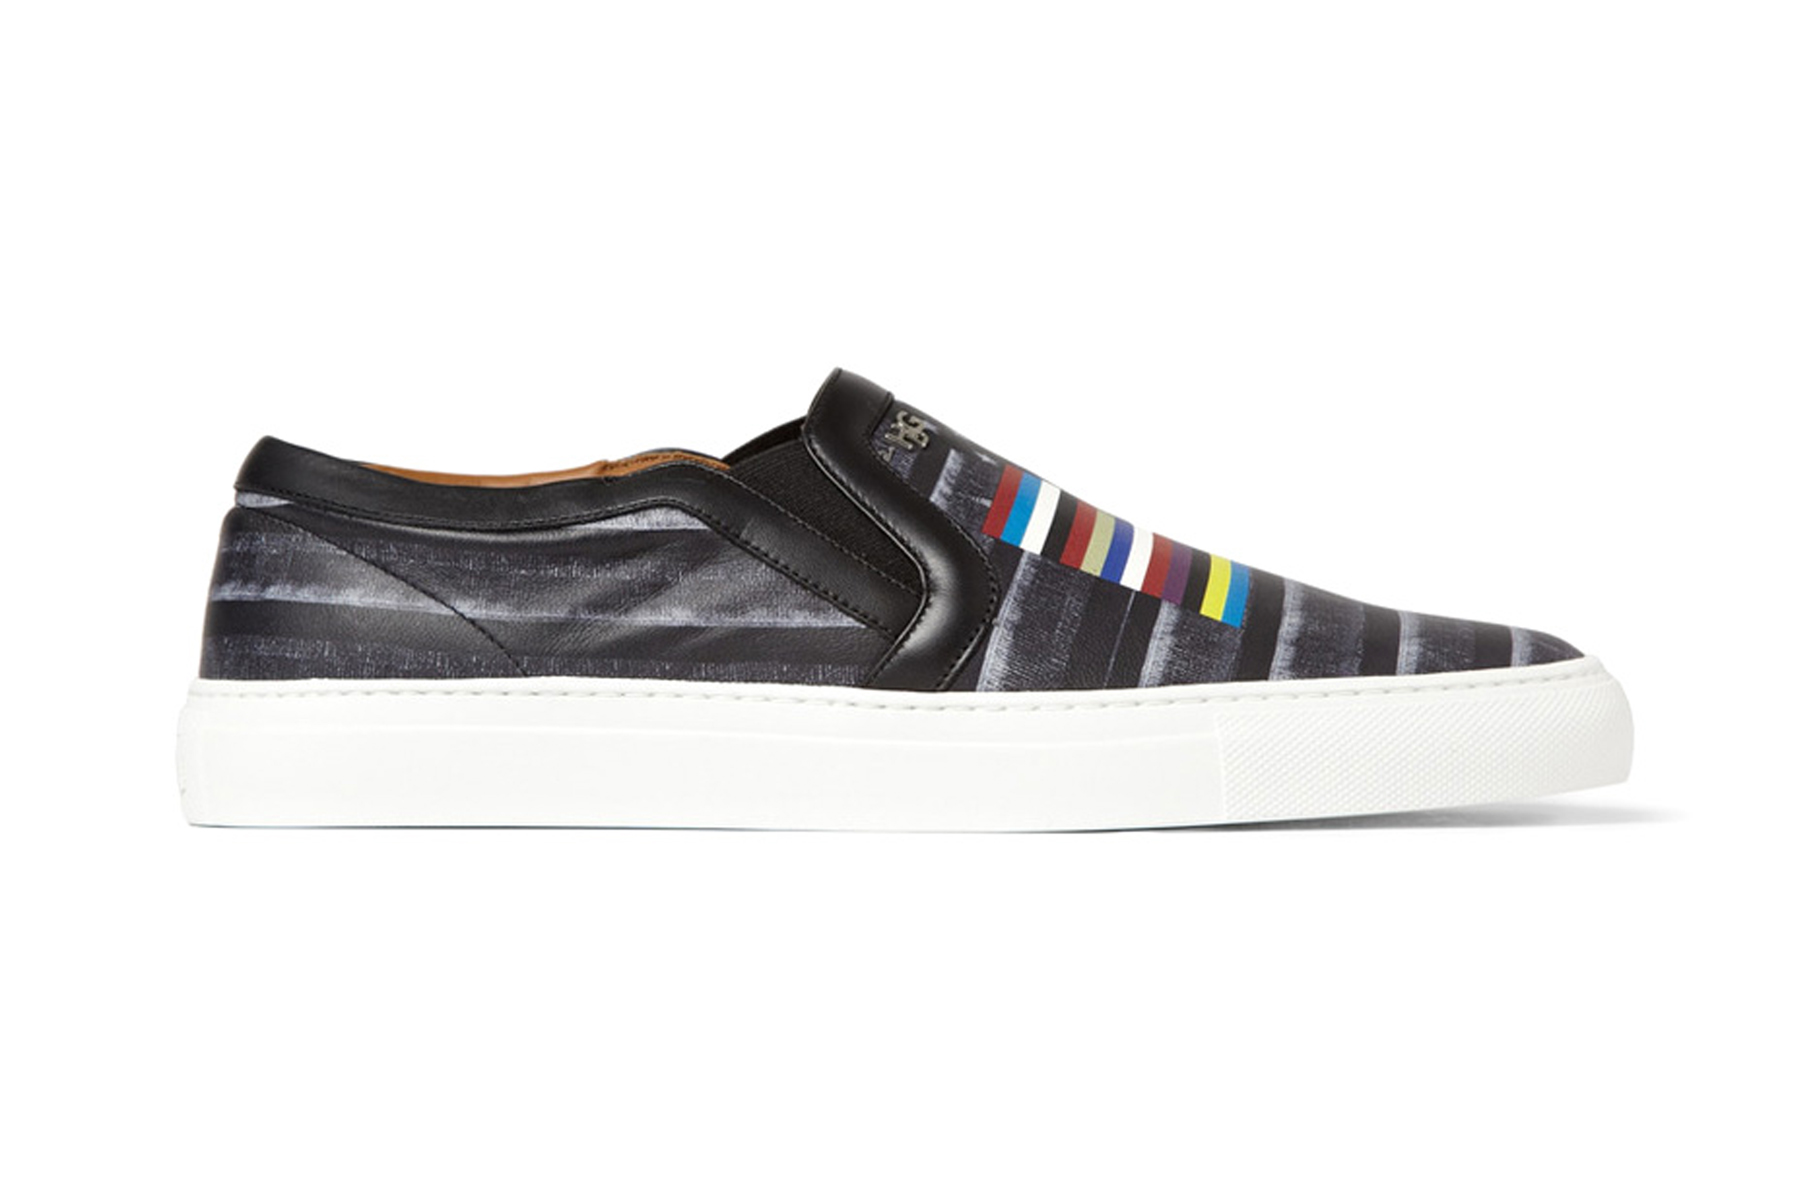 givenchy flag print leather skate shoes